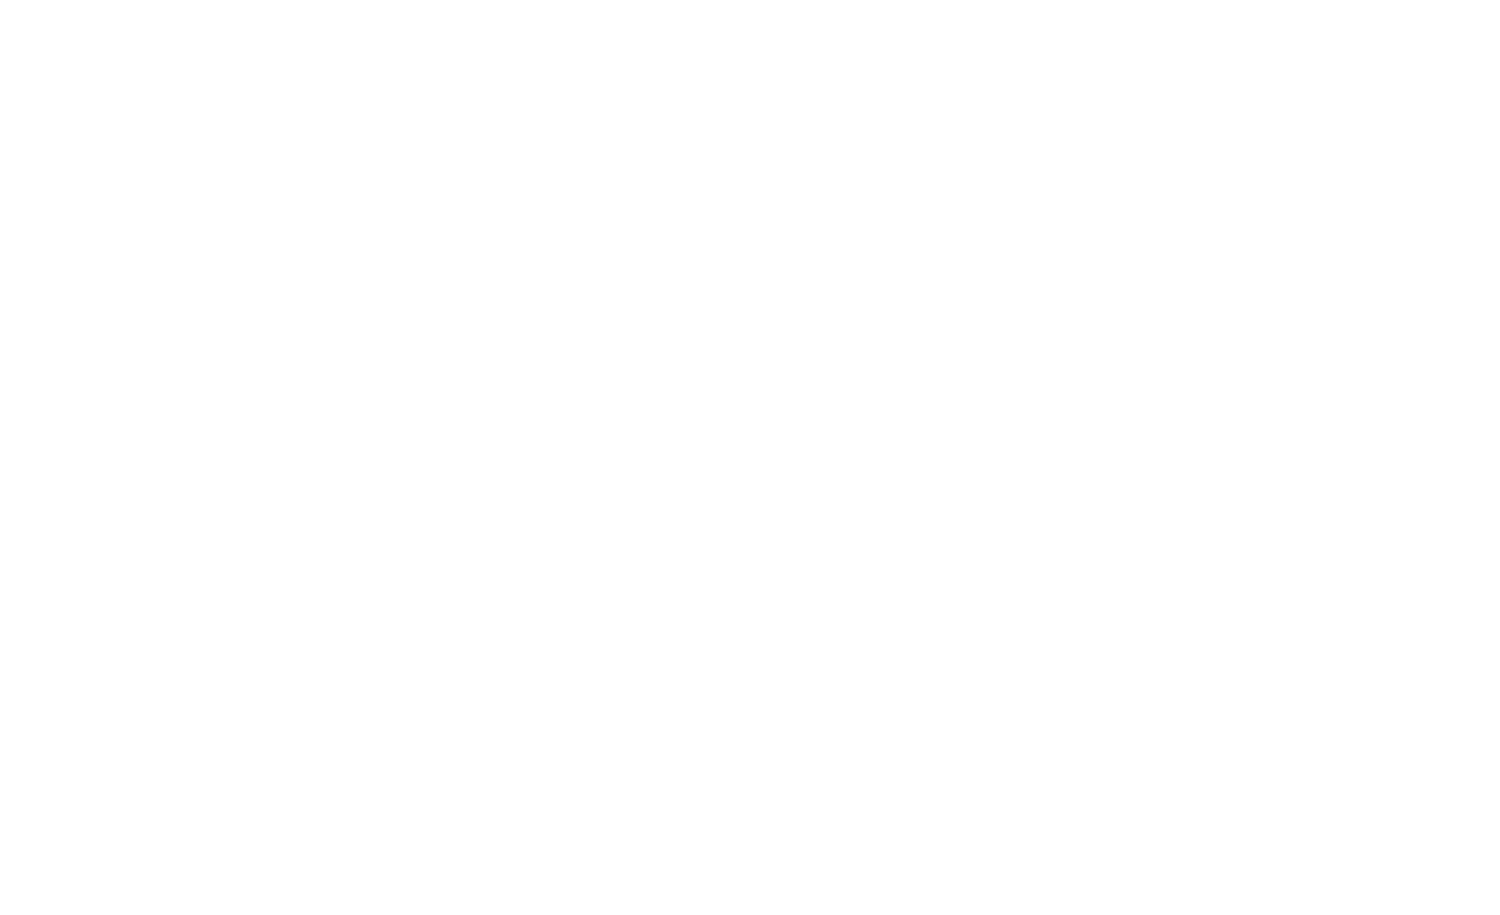 MOUNTAIN WIND FILMS